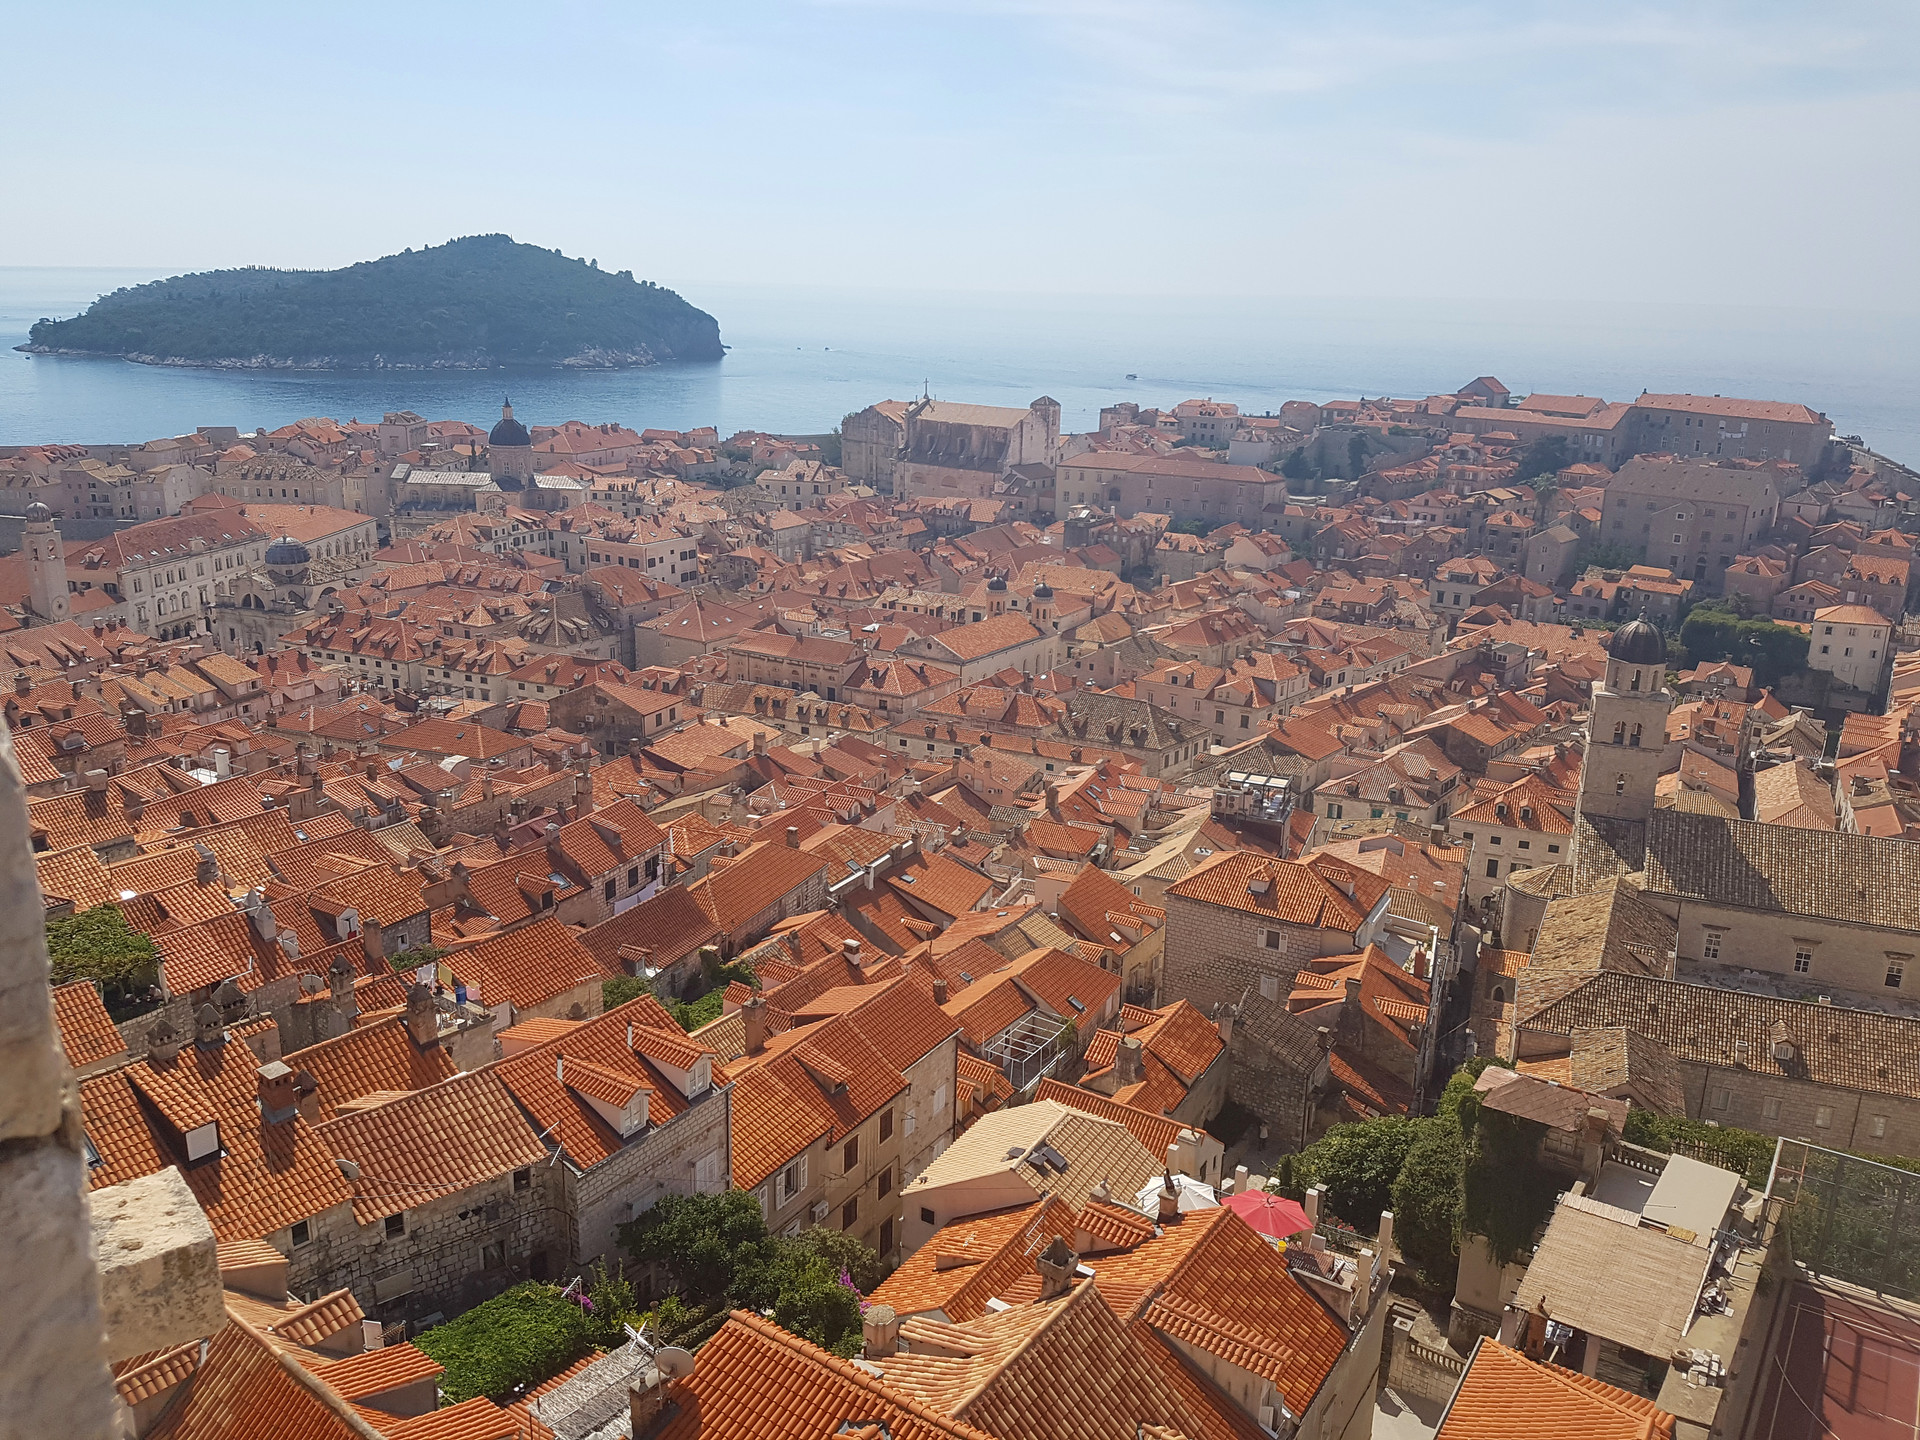 View of Old Town & Lokrum Island